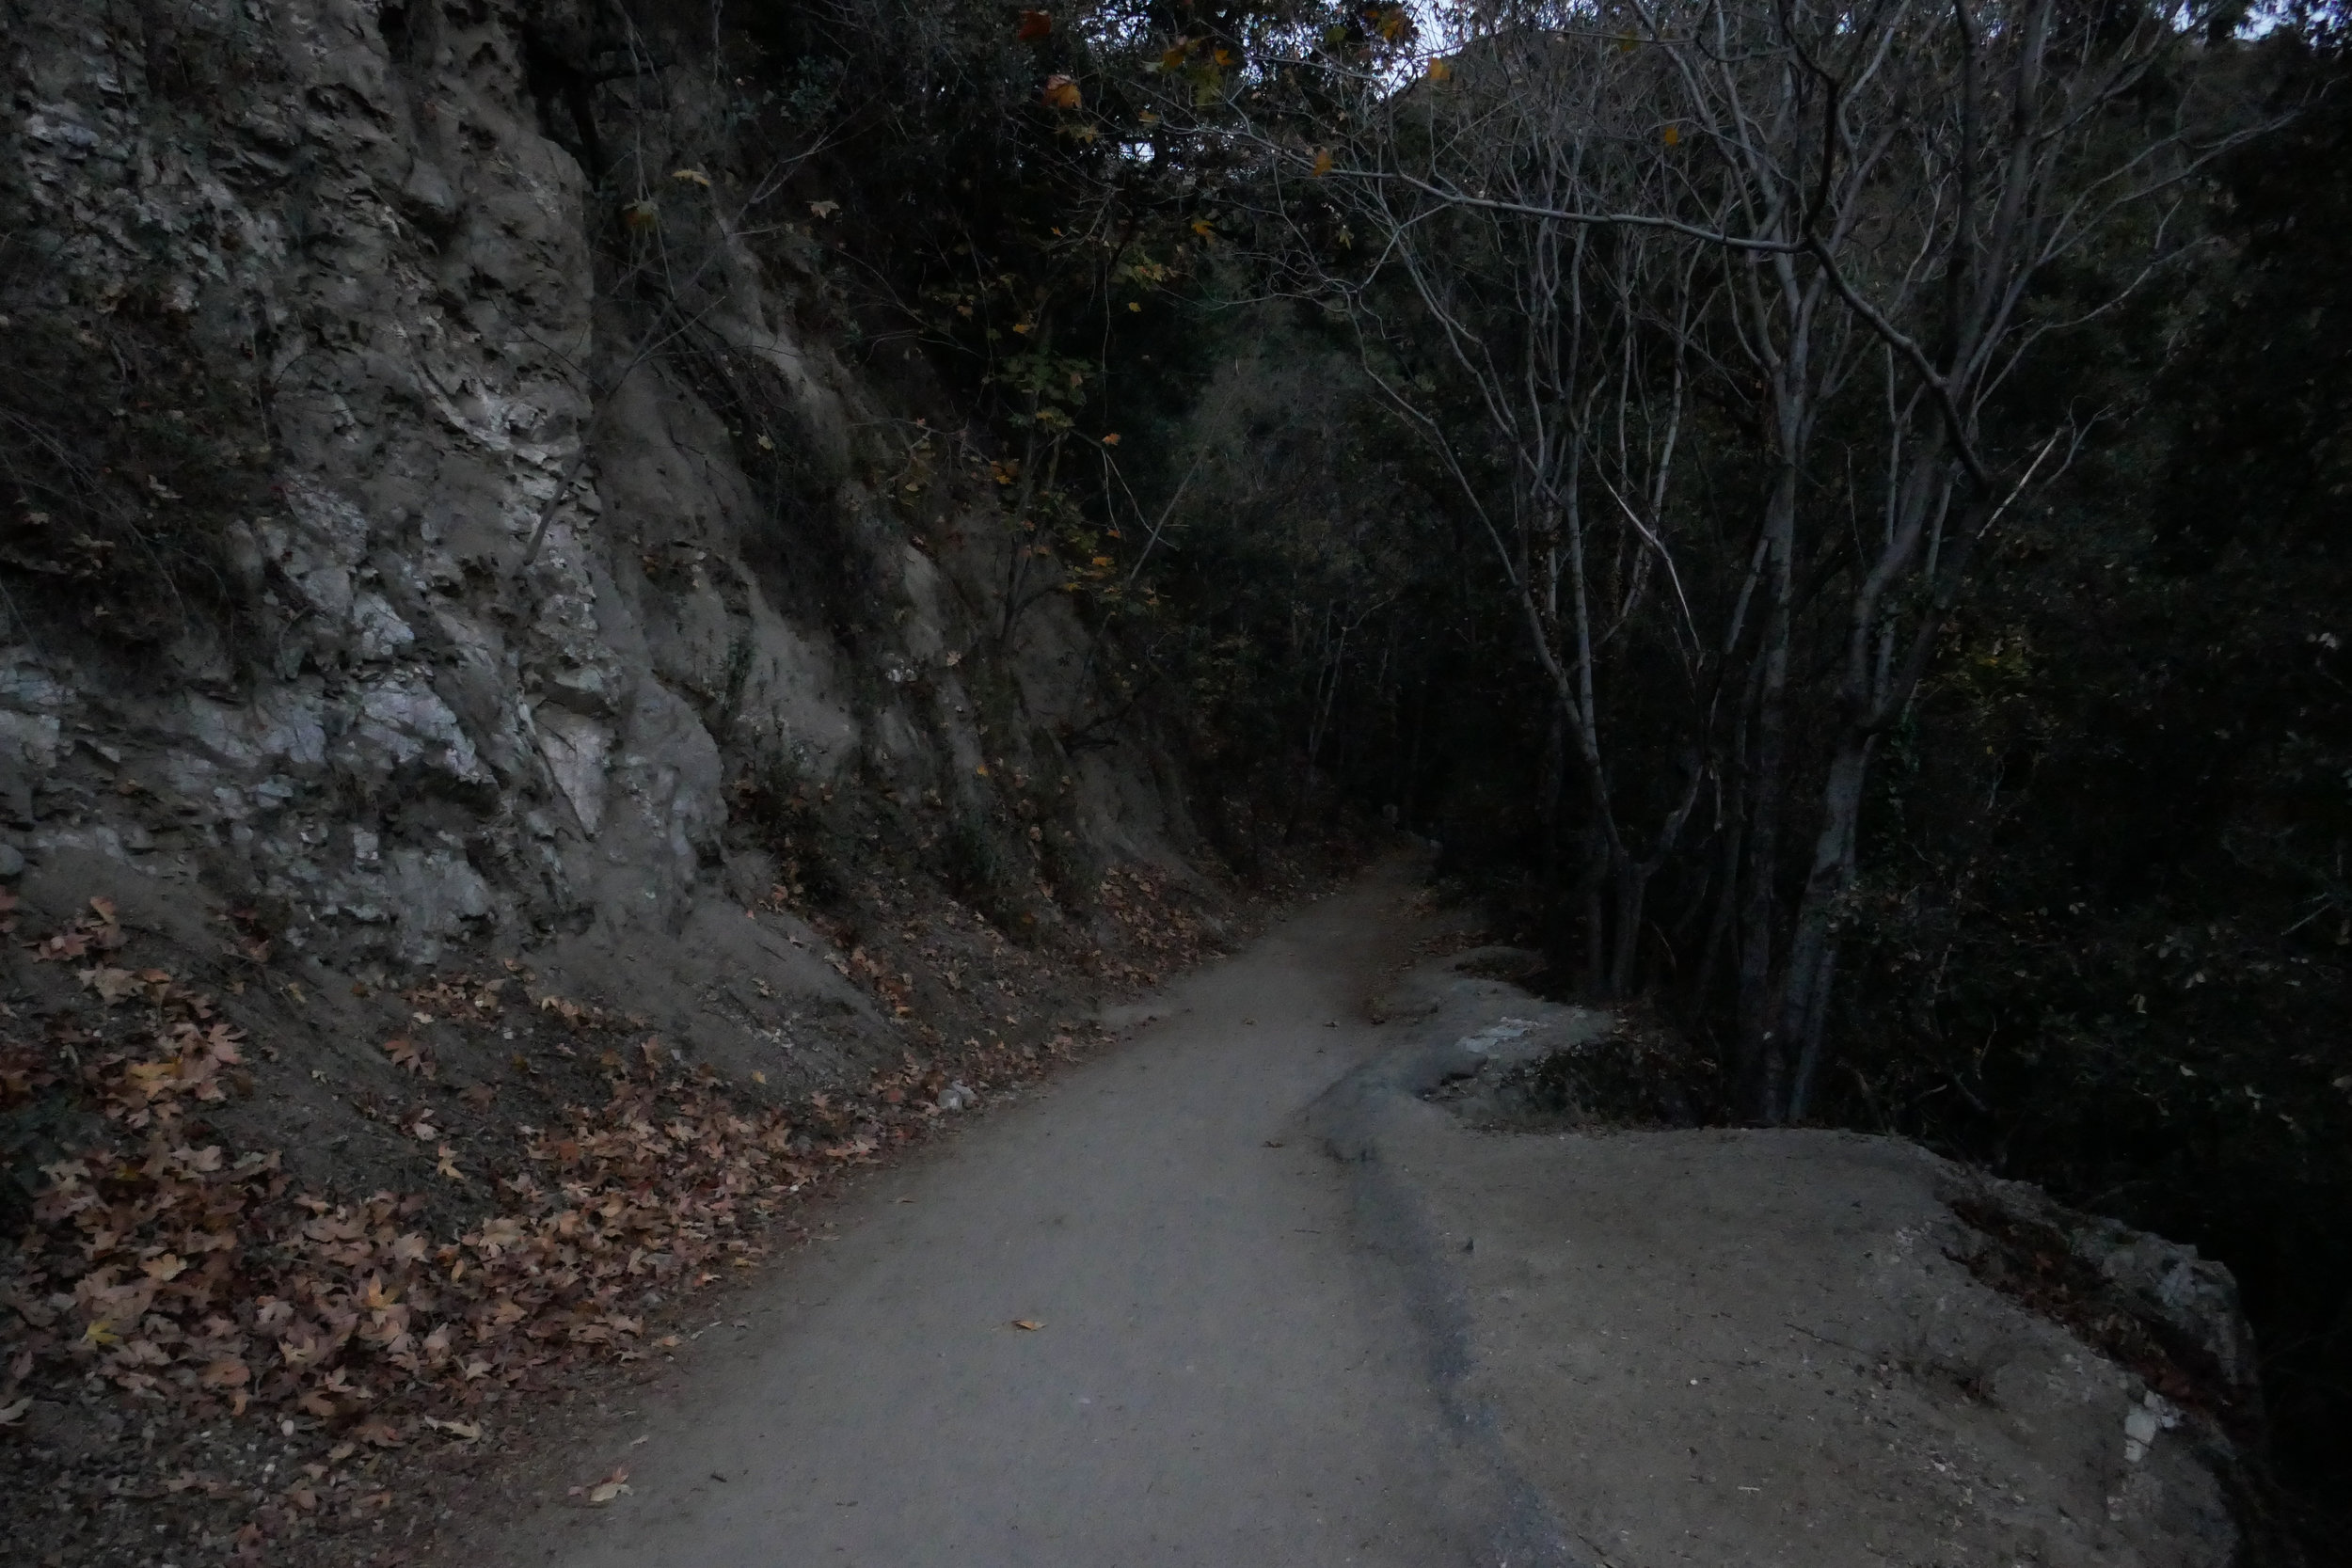 It was still dark when we headed into the canyon along the paved road.